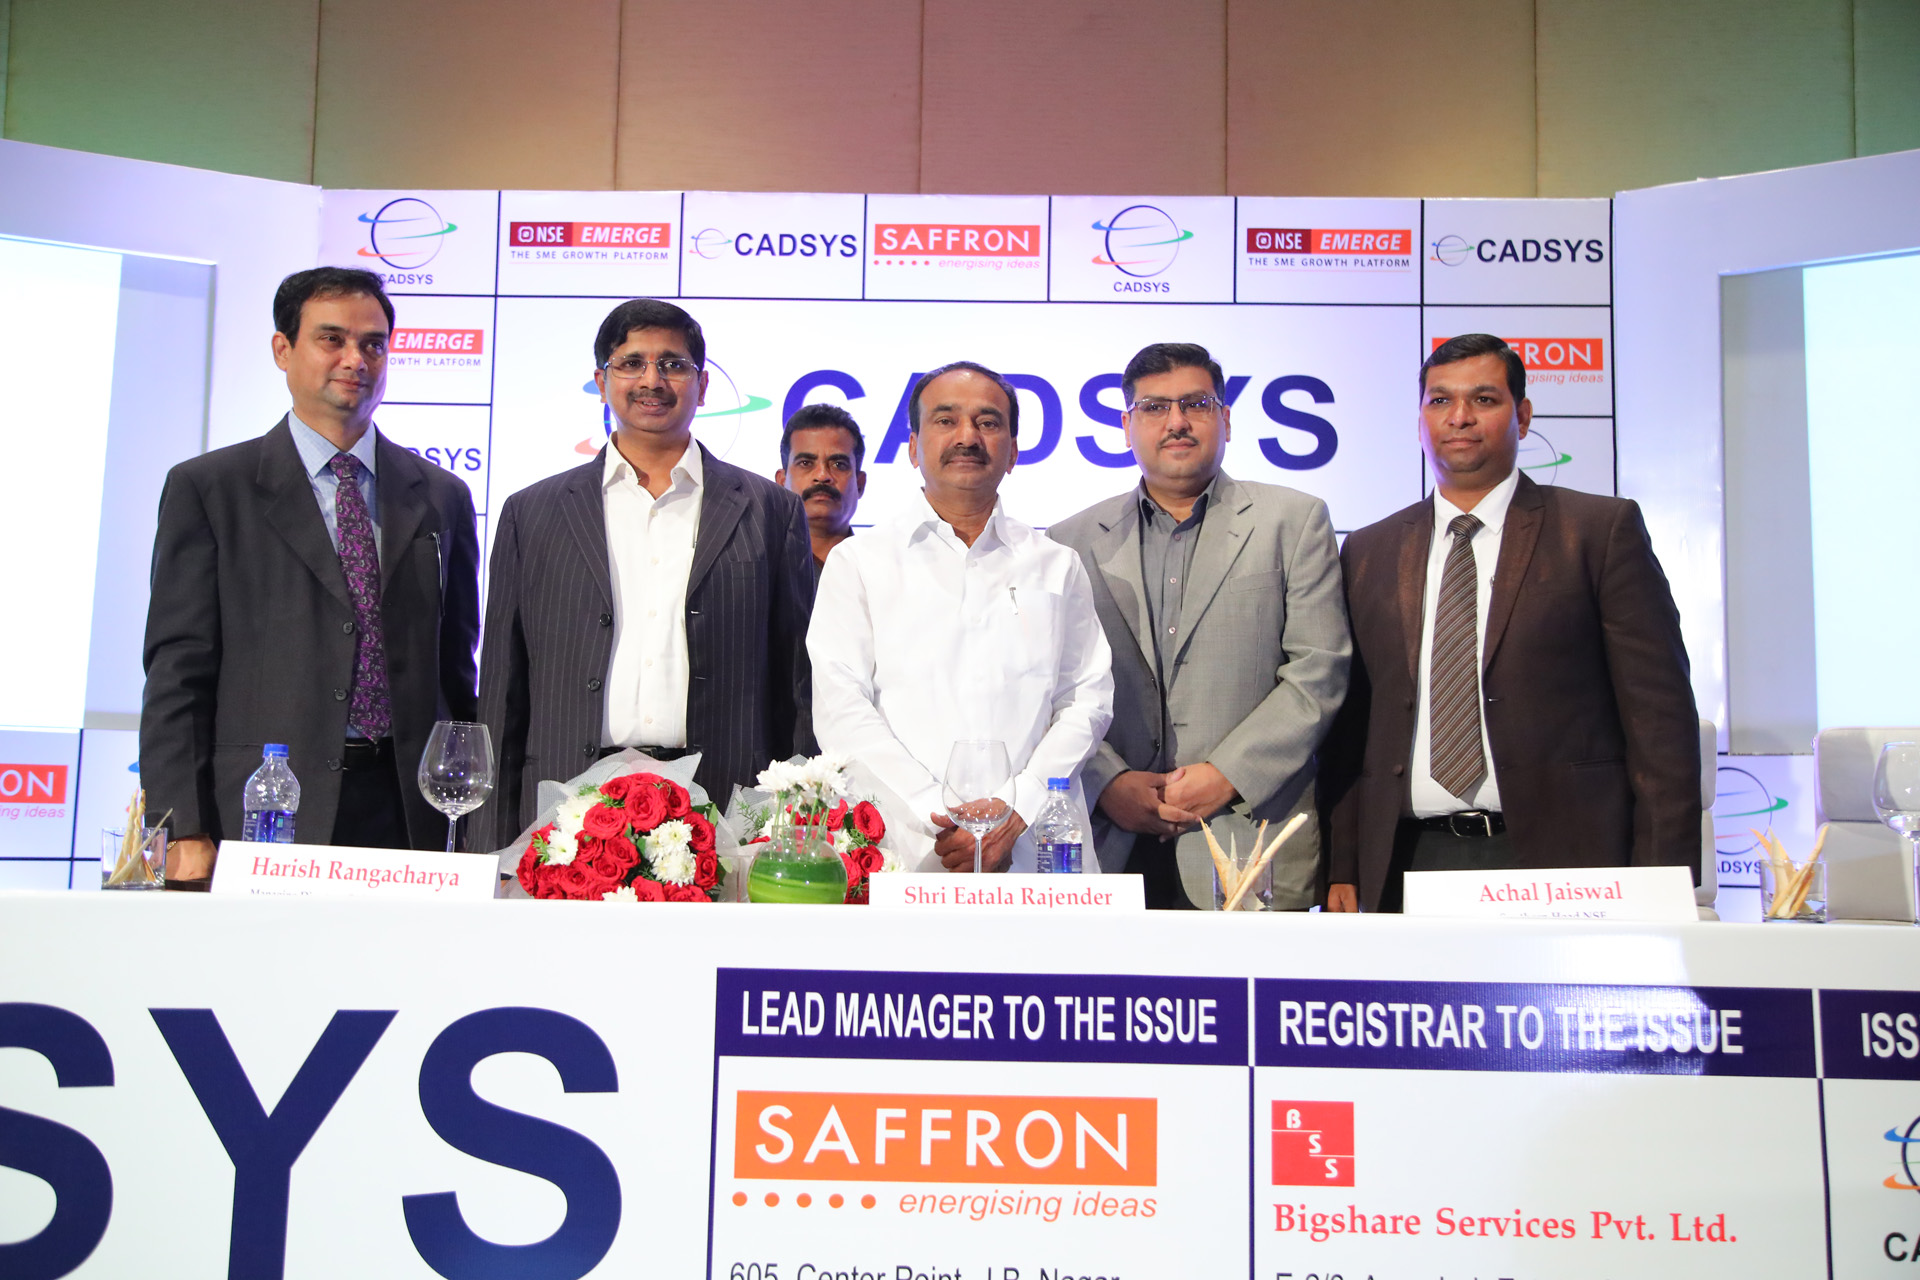 Cadsys (India) Limited has successfully completed its Initial Public Offer and is listed on National Stock Exchange EMERGE. On October 4th, 2017, the Company hosted its Listing Ceremony marking trading of the shares on the NSE EMERGE platform.